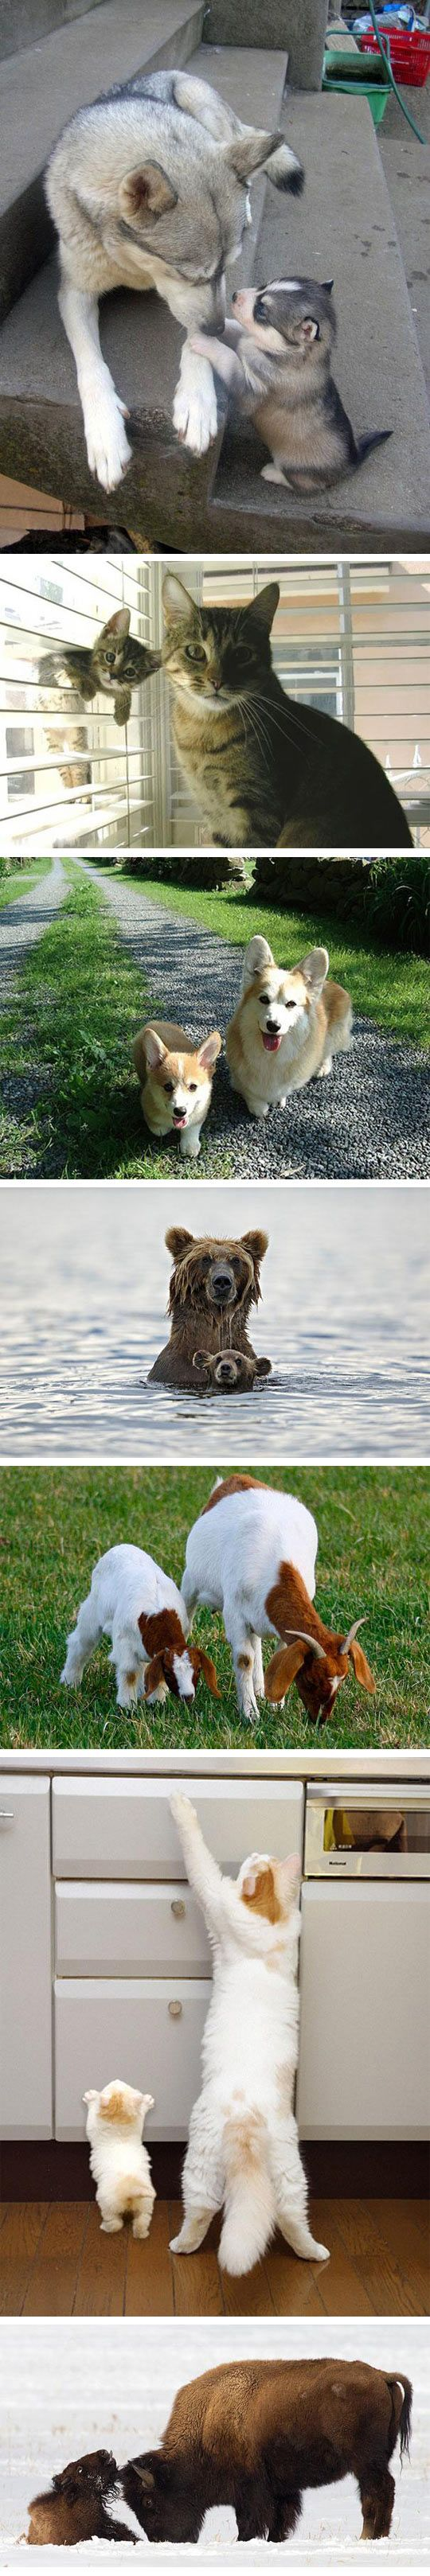 Animals with their miniature